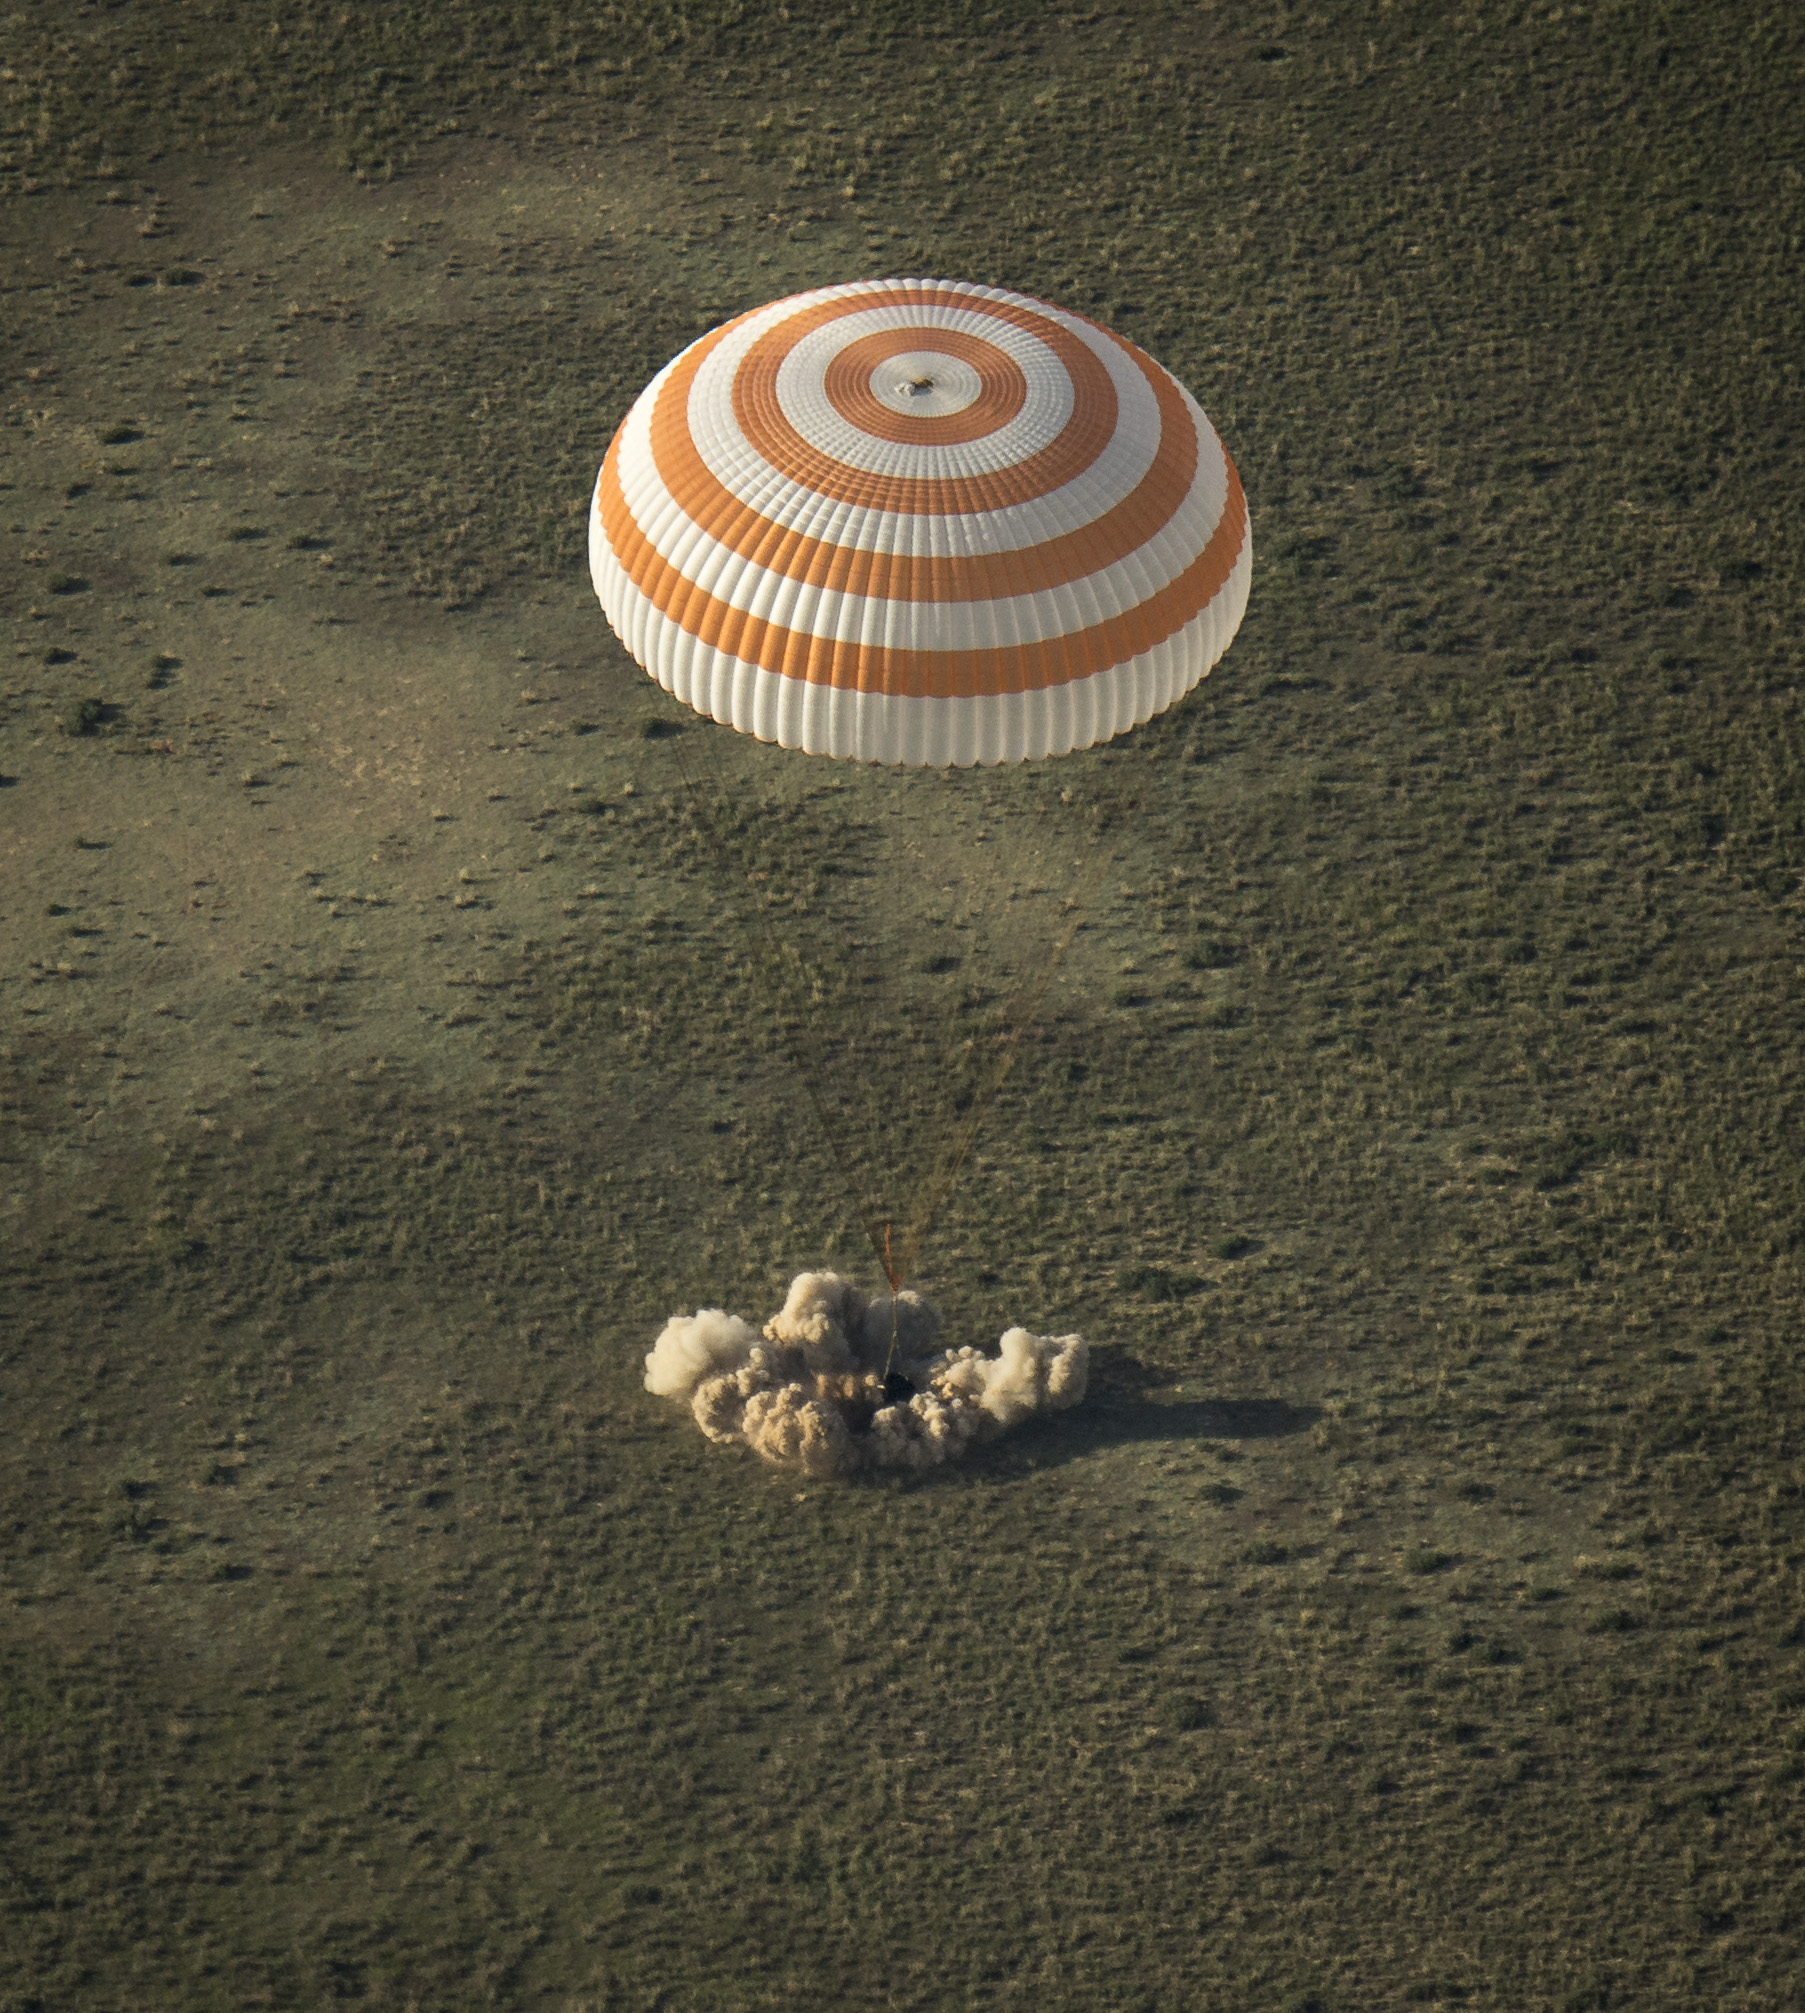 Touchdown! Space Station Crew Returns to Earth